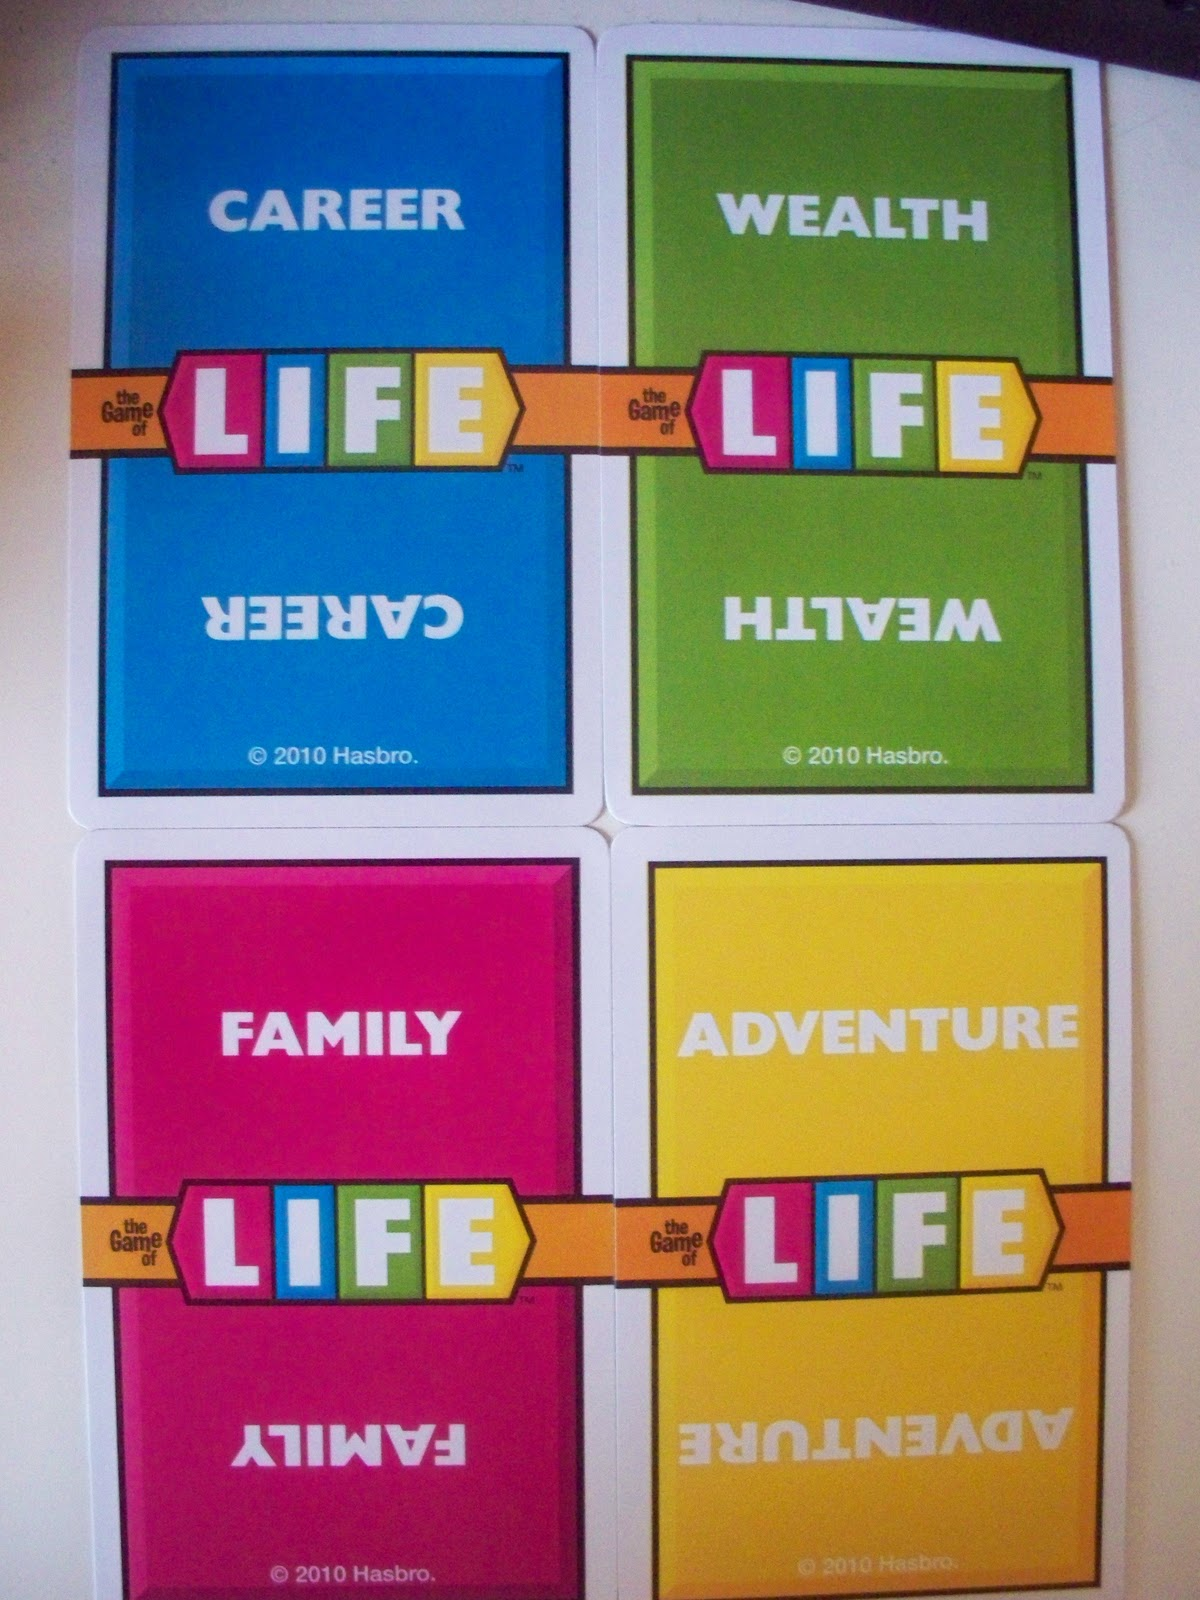 photograph about Game of Life Career Cards Printable referred to as Recreation Playing cards: Everyday living Board Match Playing cards